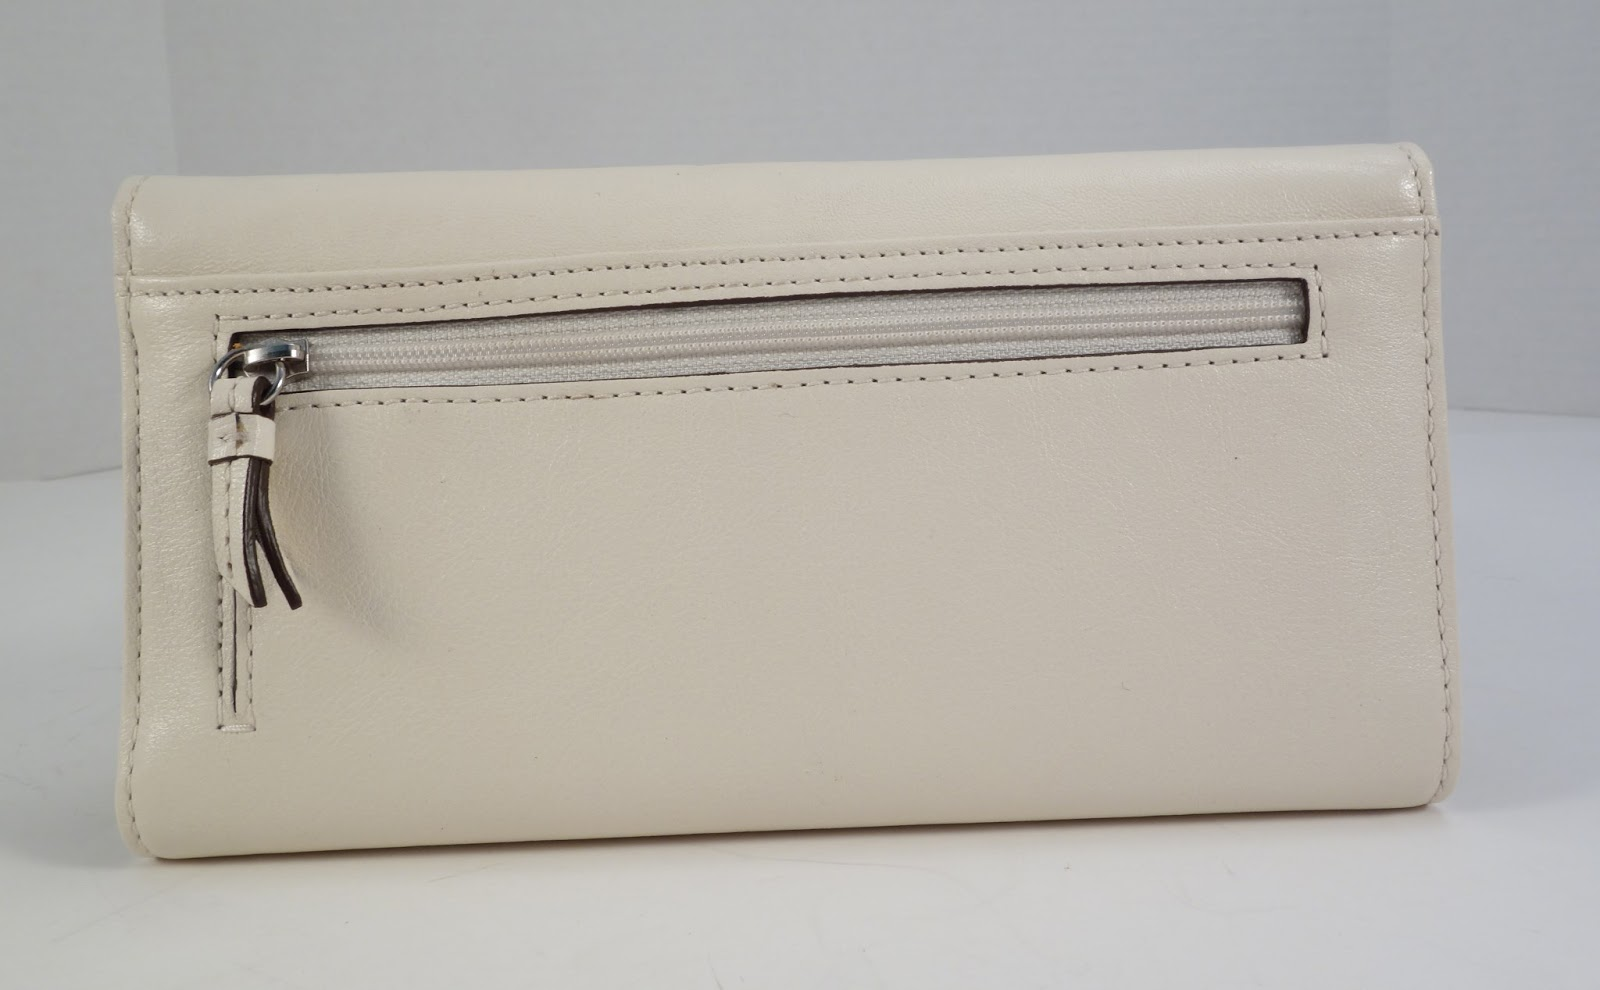 ysl cabas price - Purse Princess: Brand New Authentic Coach Leather Wallet for Sale